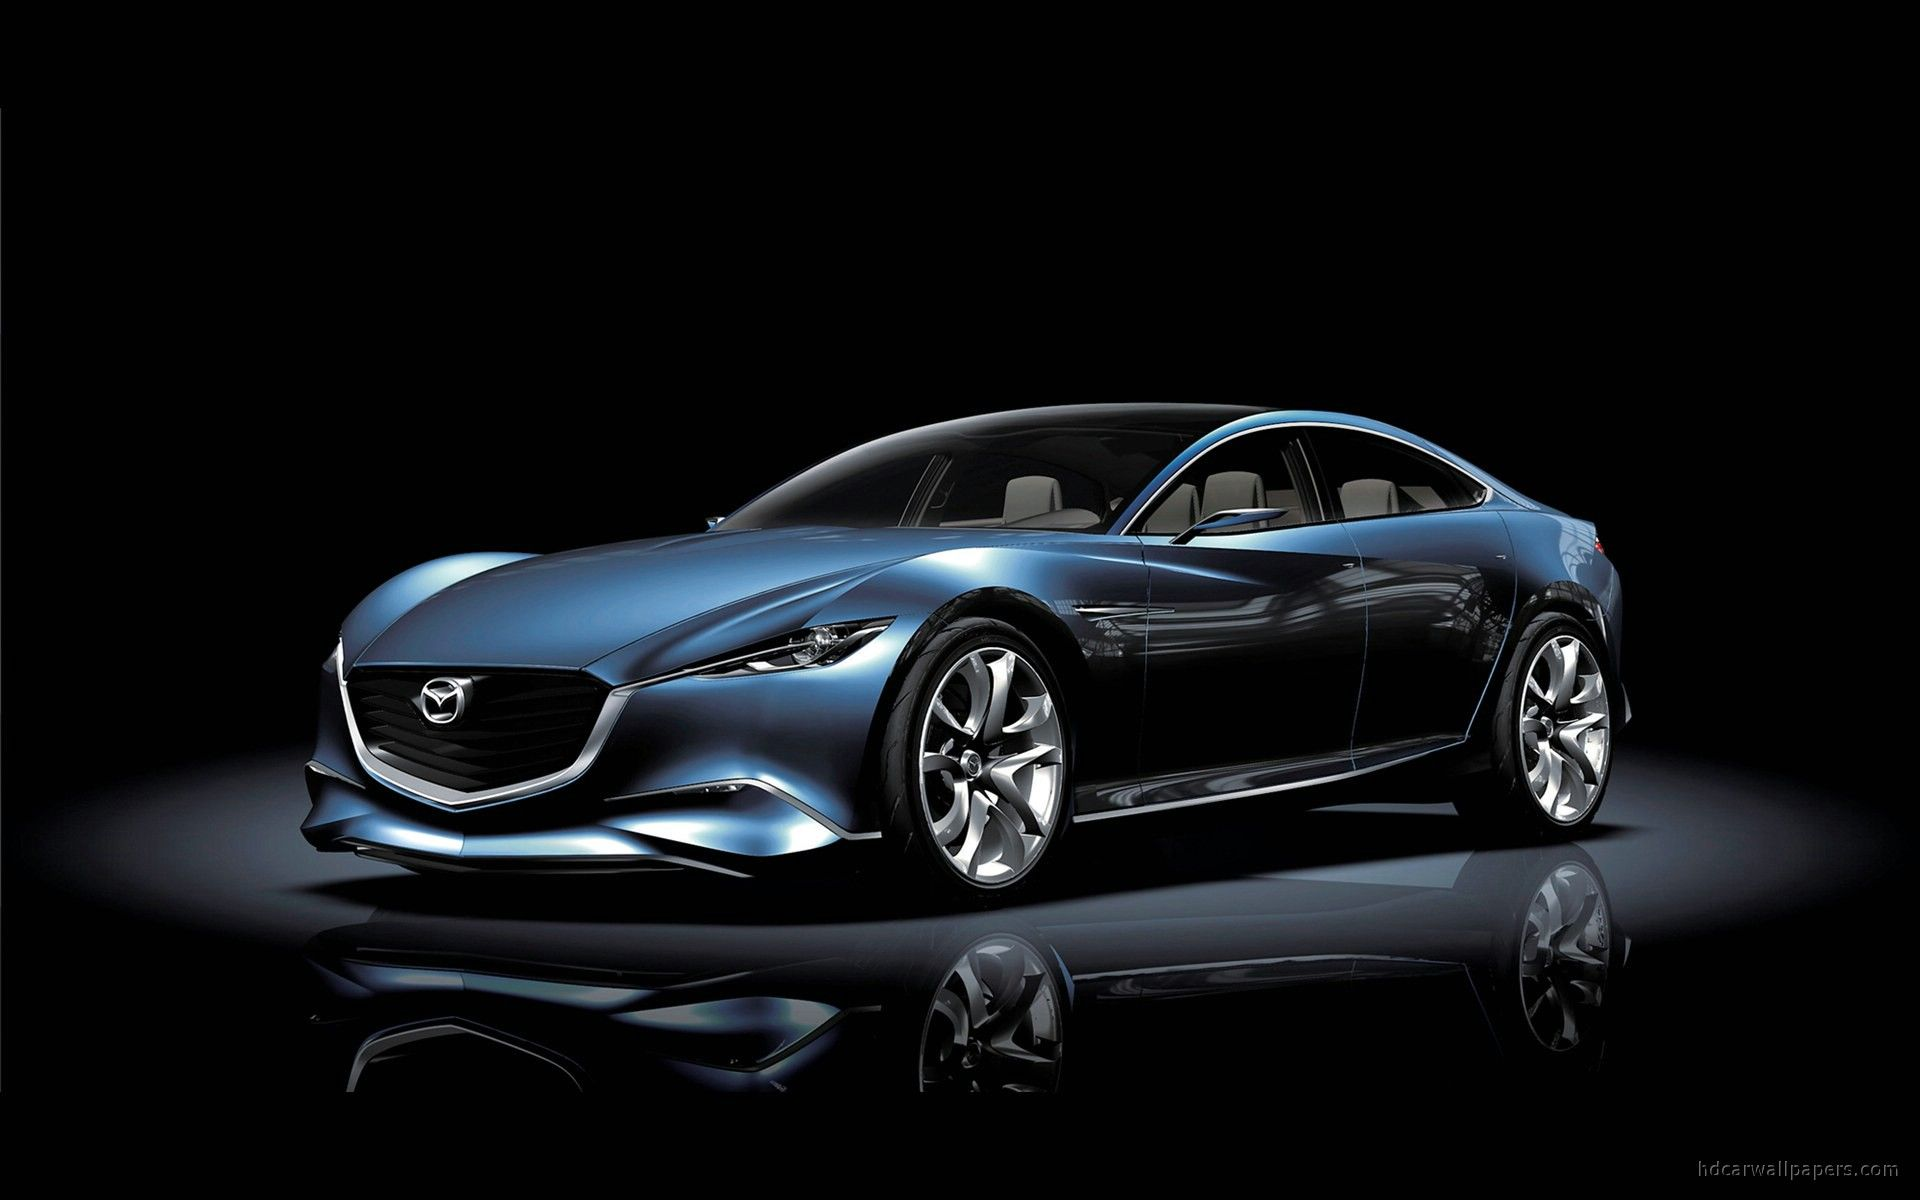 Pin By Hd Wallpapers On Bike Cars Wallpapers Pinterest Mazda